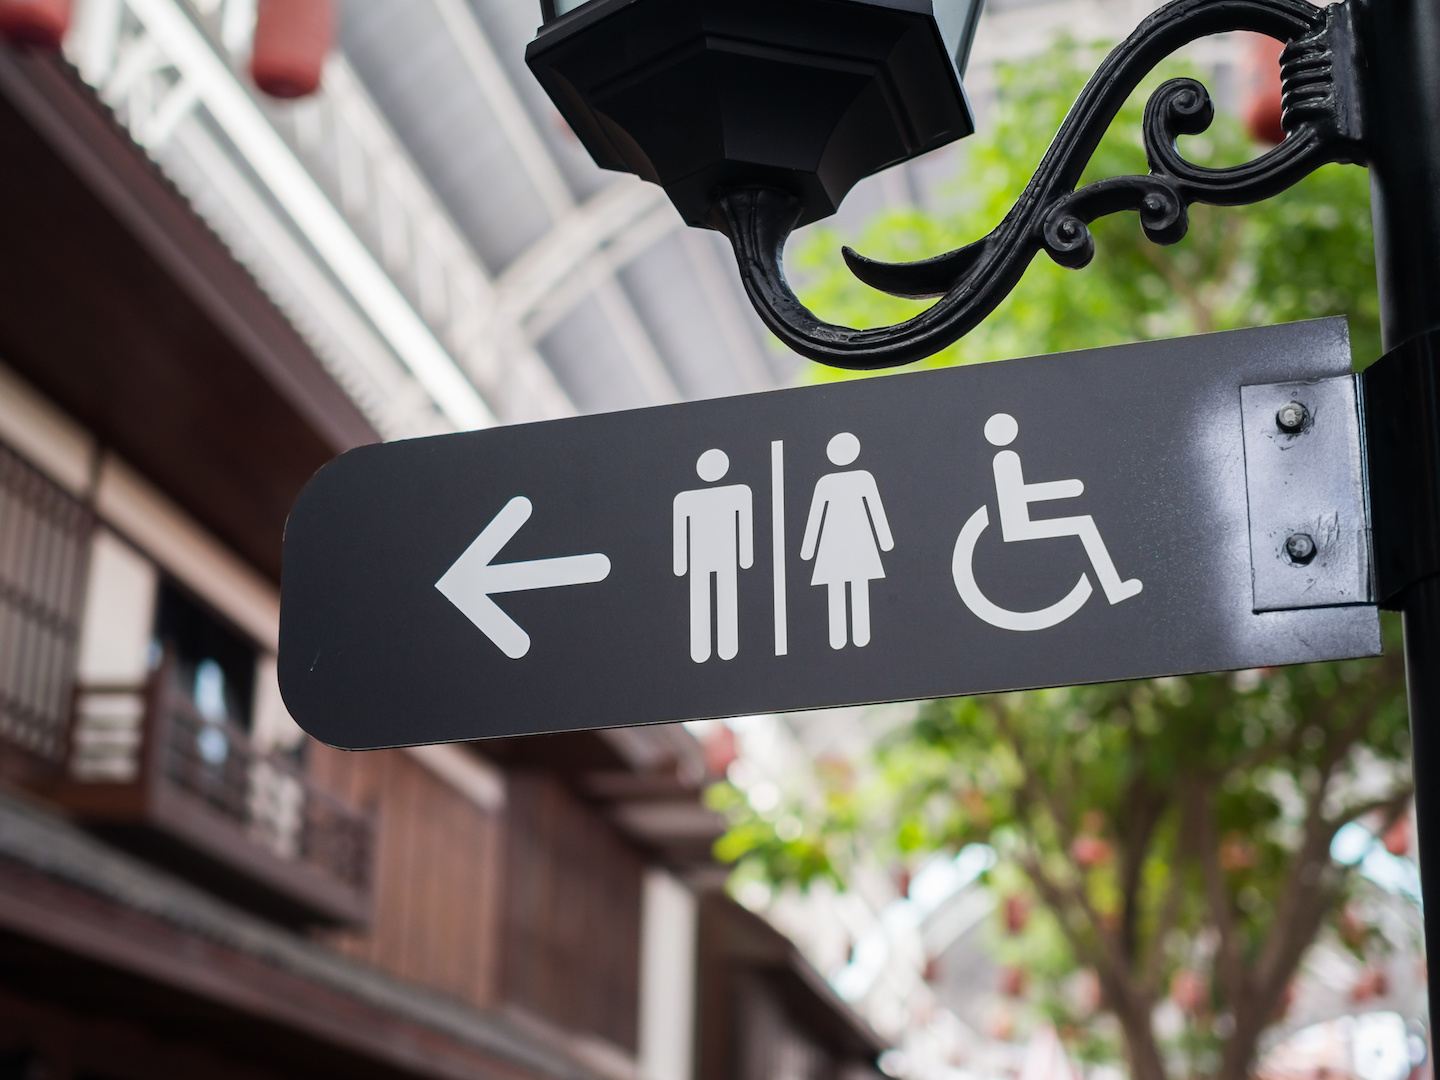 Accessible adult change facilities mandated in new Australian buildings